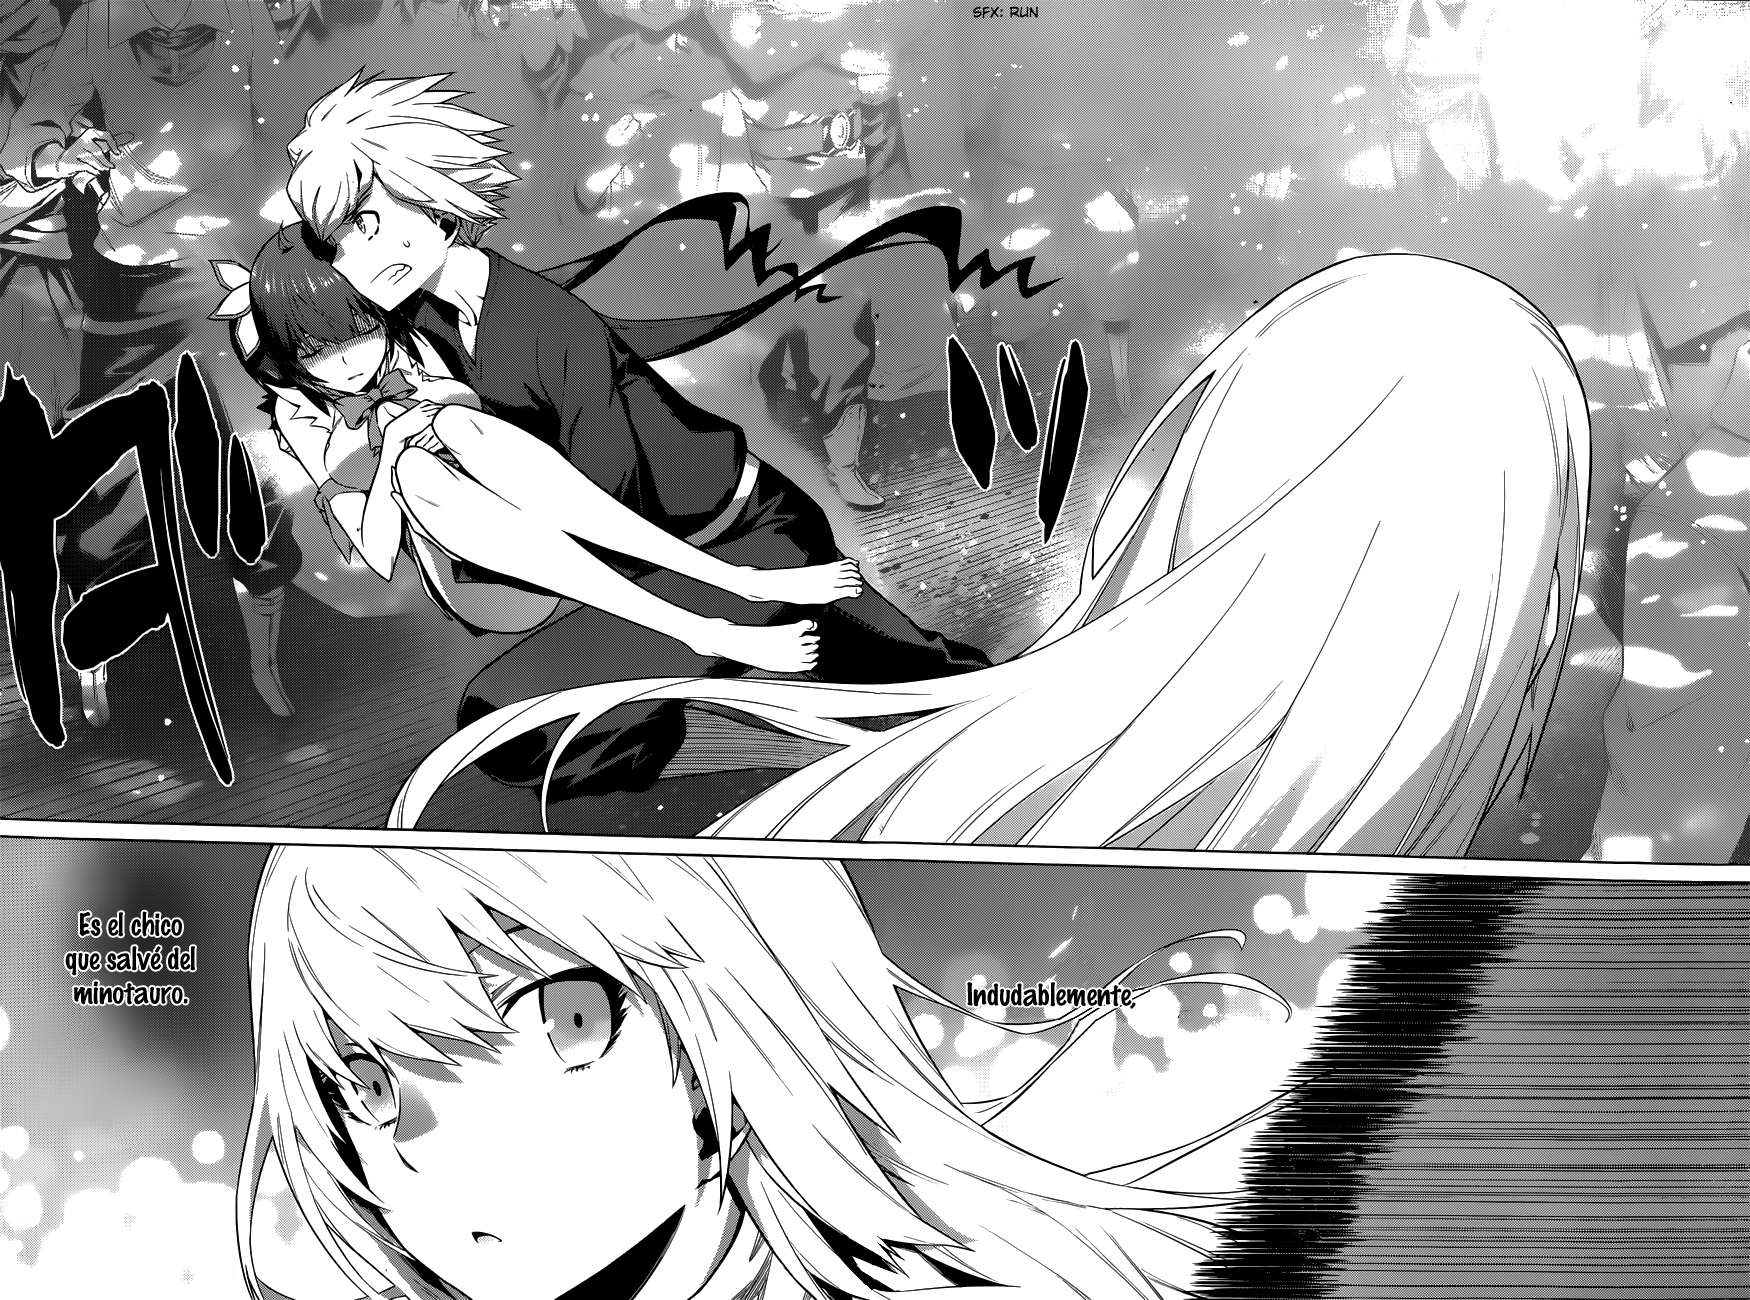 http://c5.ninemanga.com/es_manga/19/14355/356133/0727588a8032a9a88d6f514c263edde6.jpg Page 9